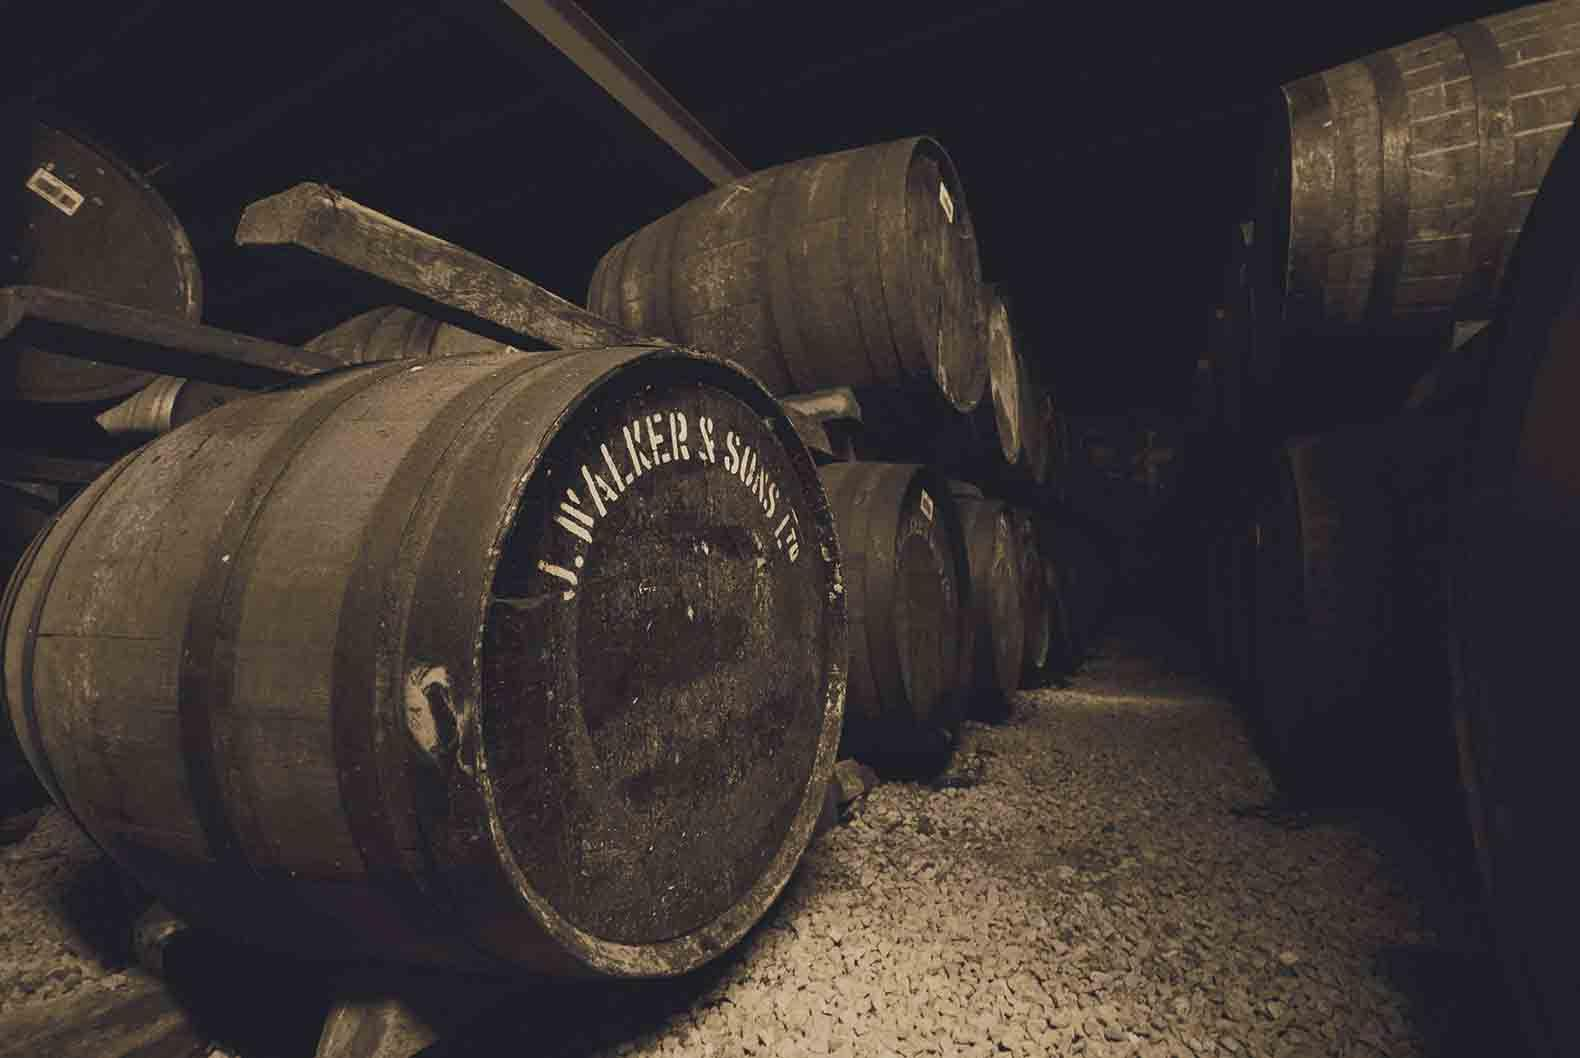 Johnnie Walker whisky casks